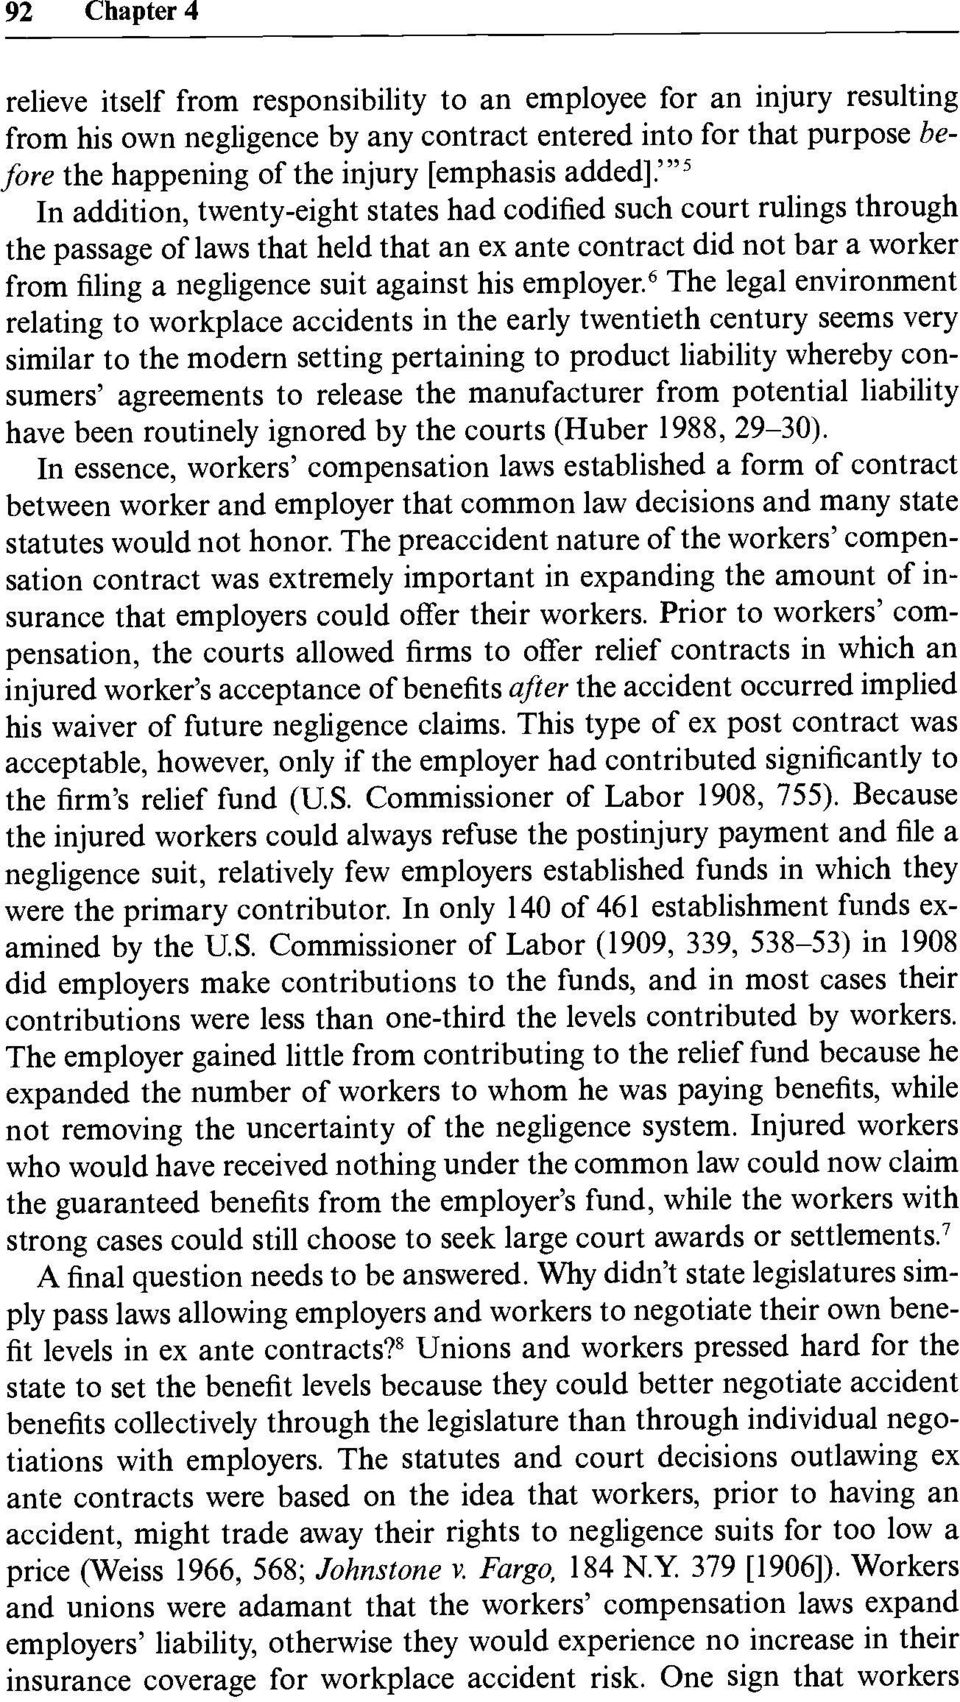 """5 In addition, twenty-eight states had codified such court rulings through the passage of laws that held that an ex ante contract did not bar a worker from filing a negligence suit against his"